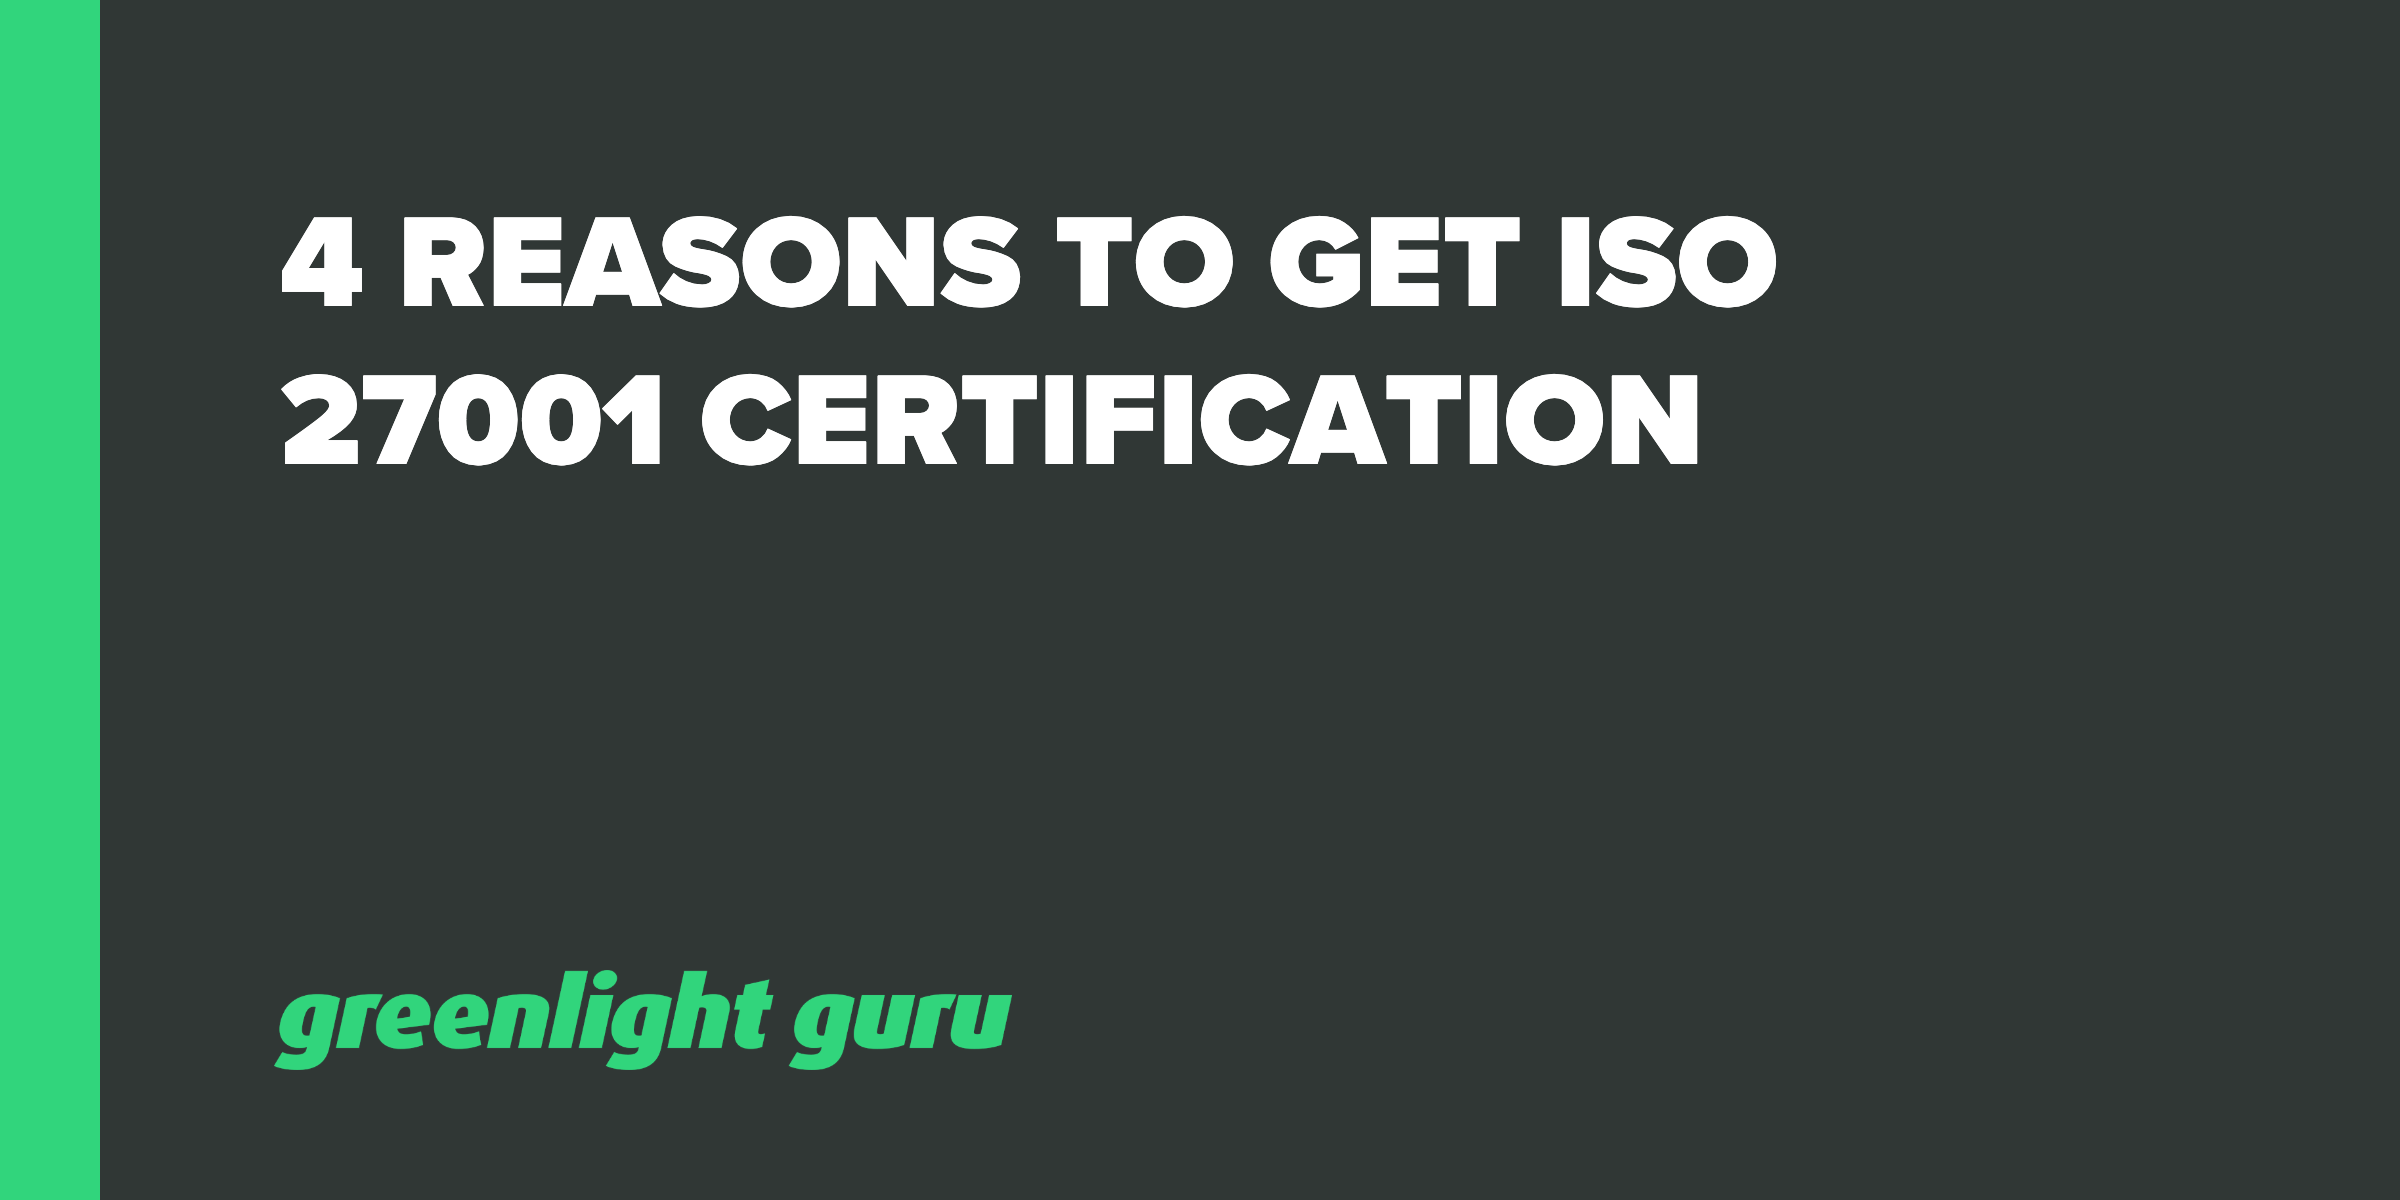 4 Reasons to Get ISO 27001 Certification - Featured Image